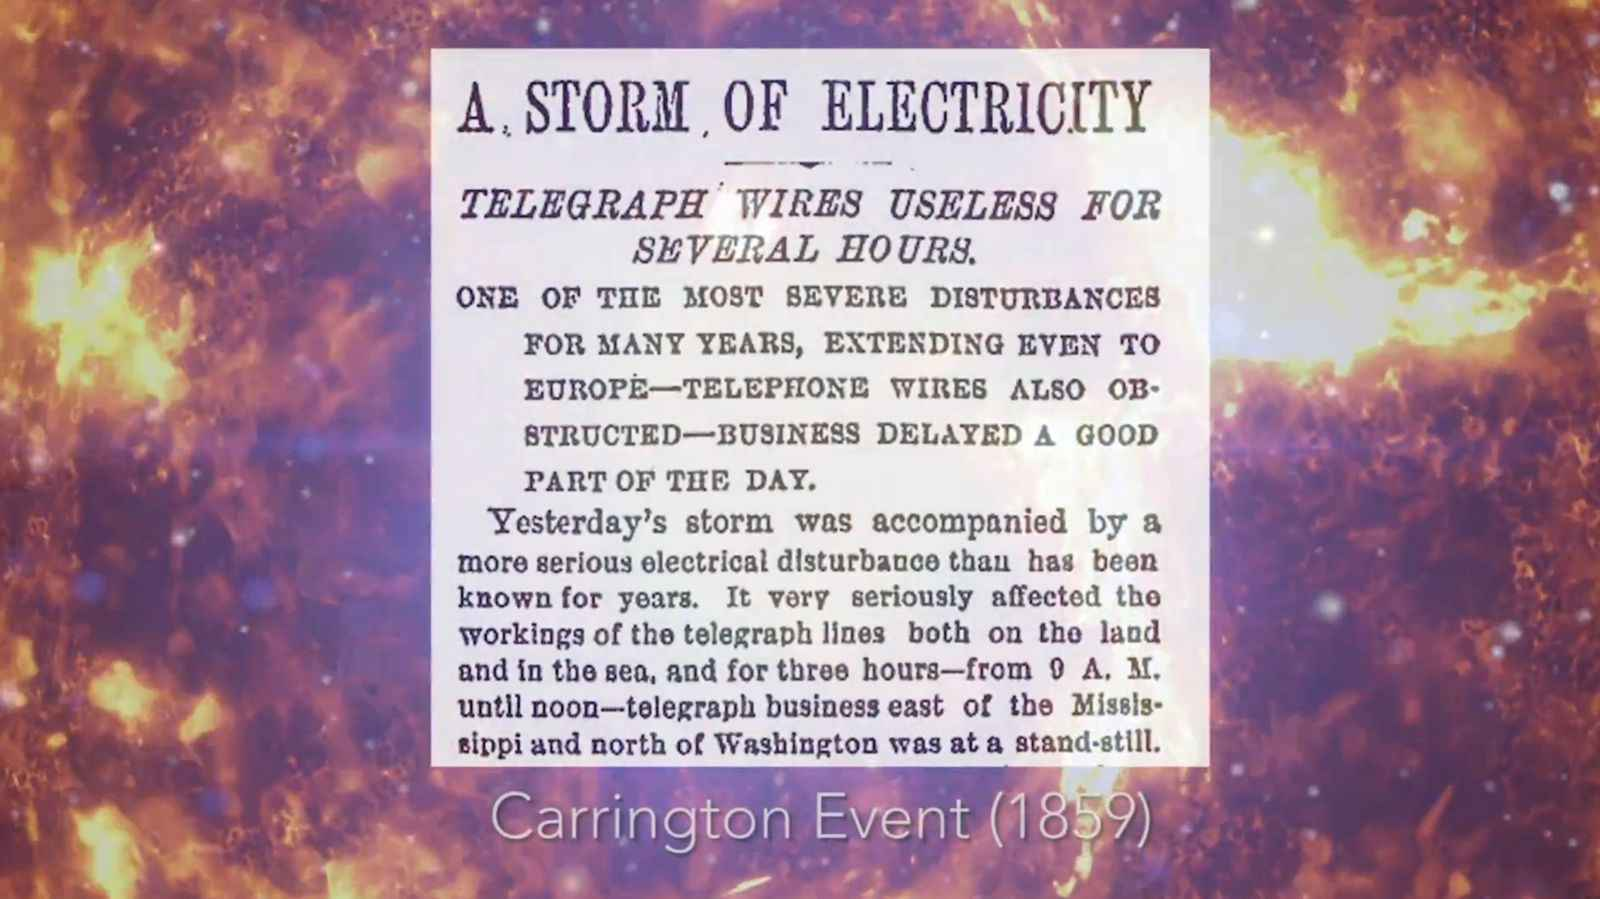 5_A_Storm_of_Electricity.jpg